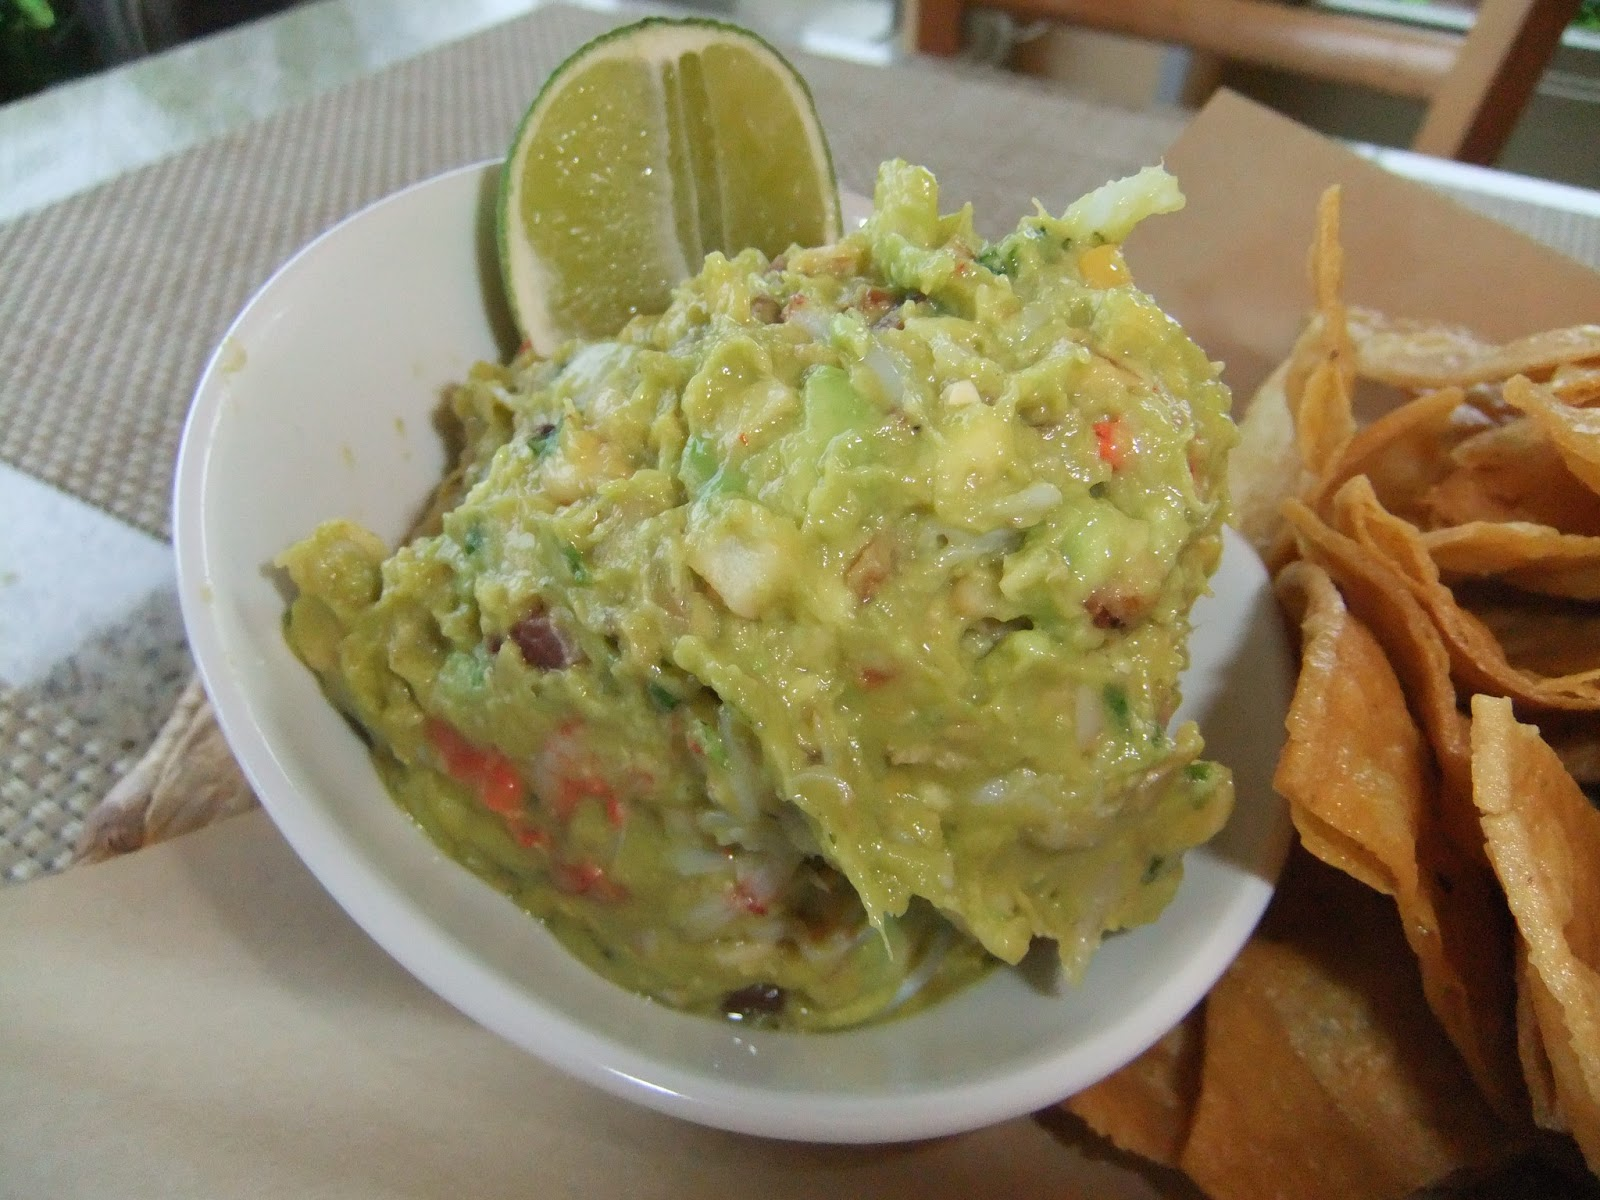 ... corn and the Mango Tomatillo salsa was very refreshing (and spicy from